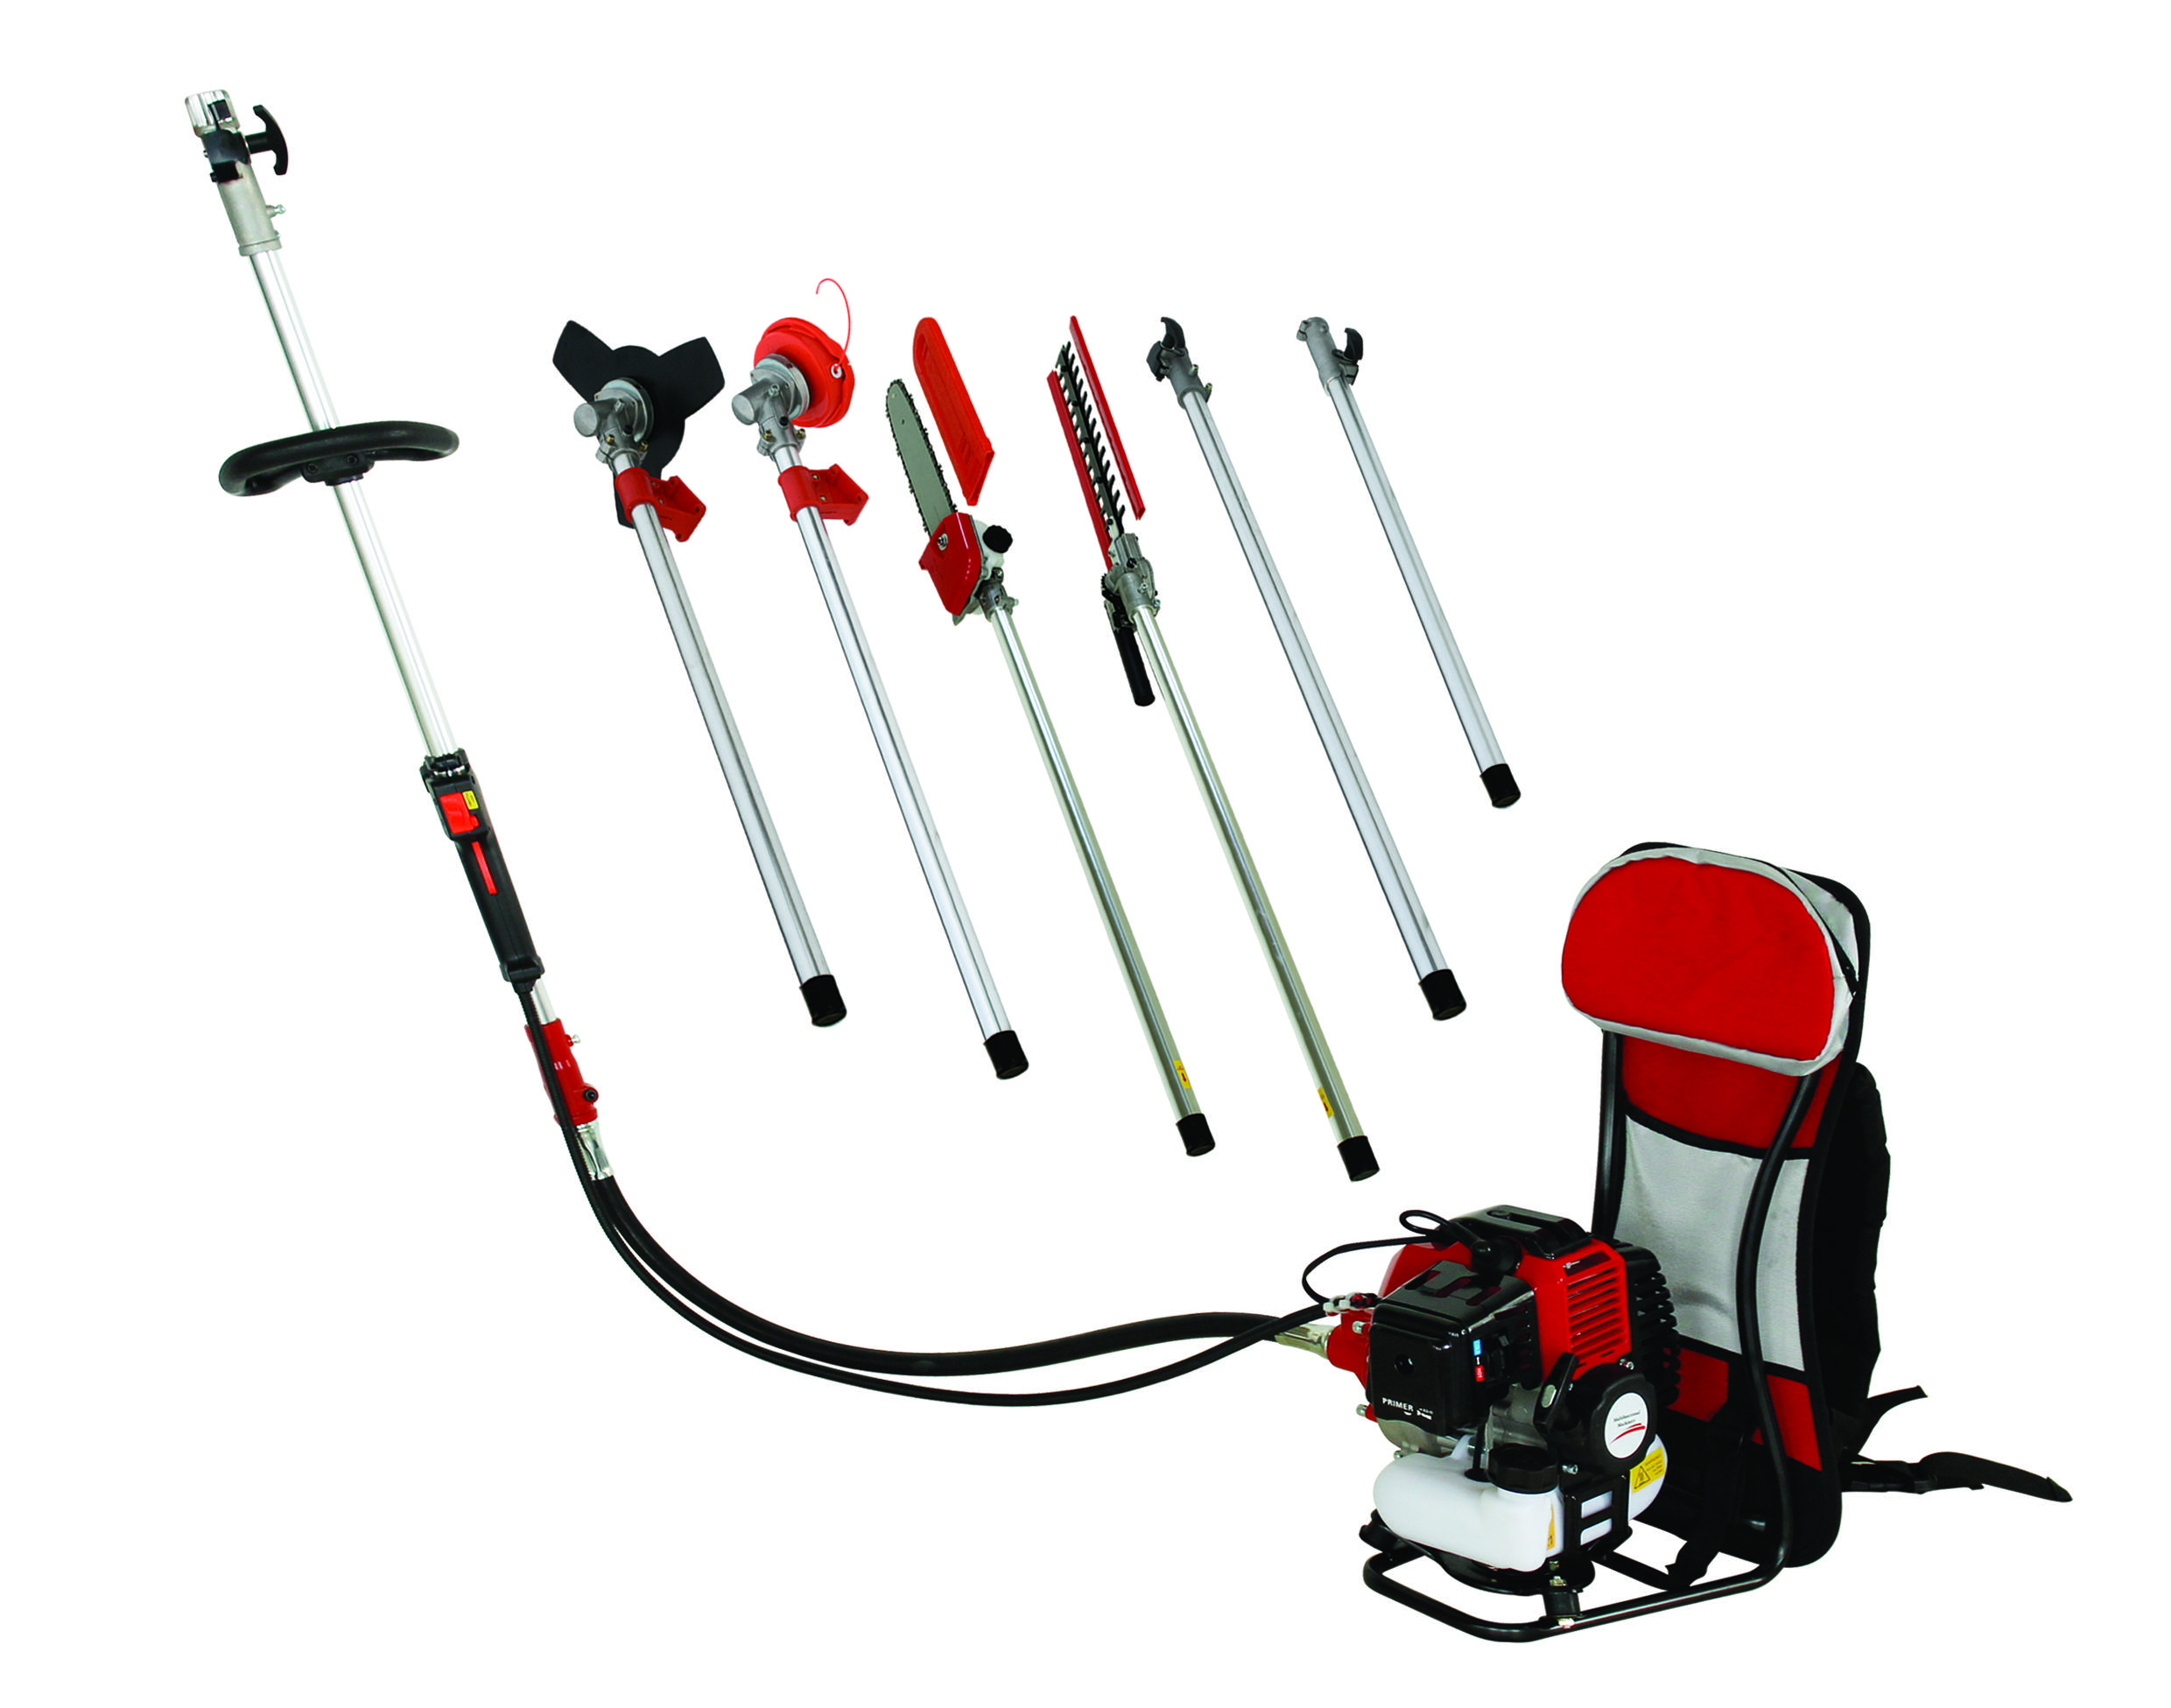 New Model Back Pack Model 52CC multi brush cutter,pole chain saw,pole hedge trimmer 5 in 1